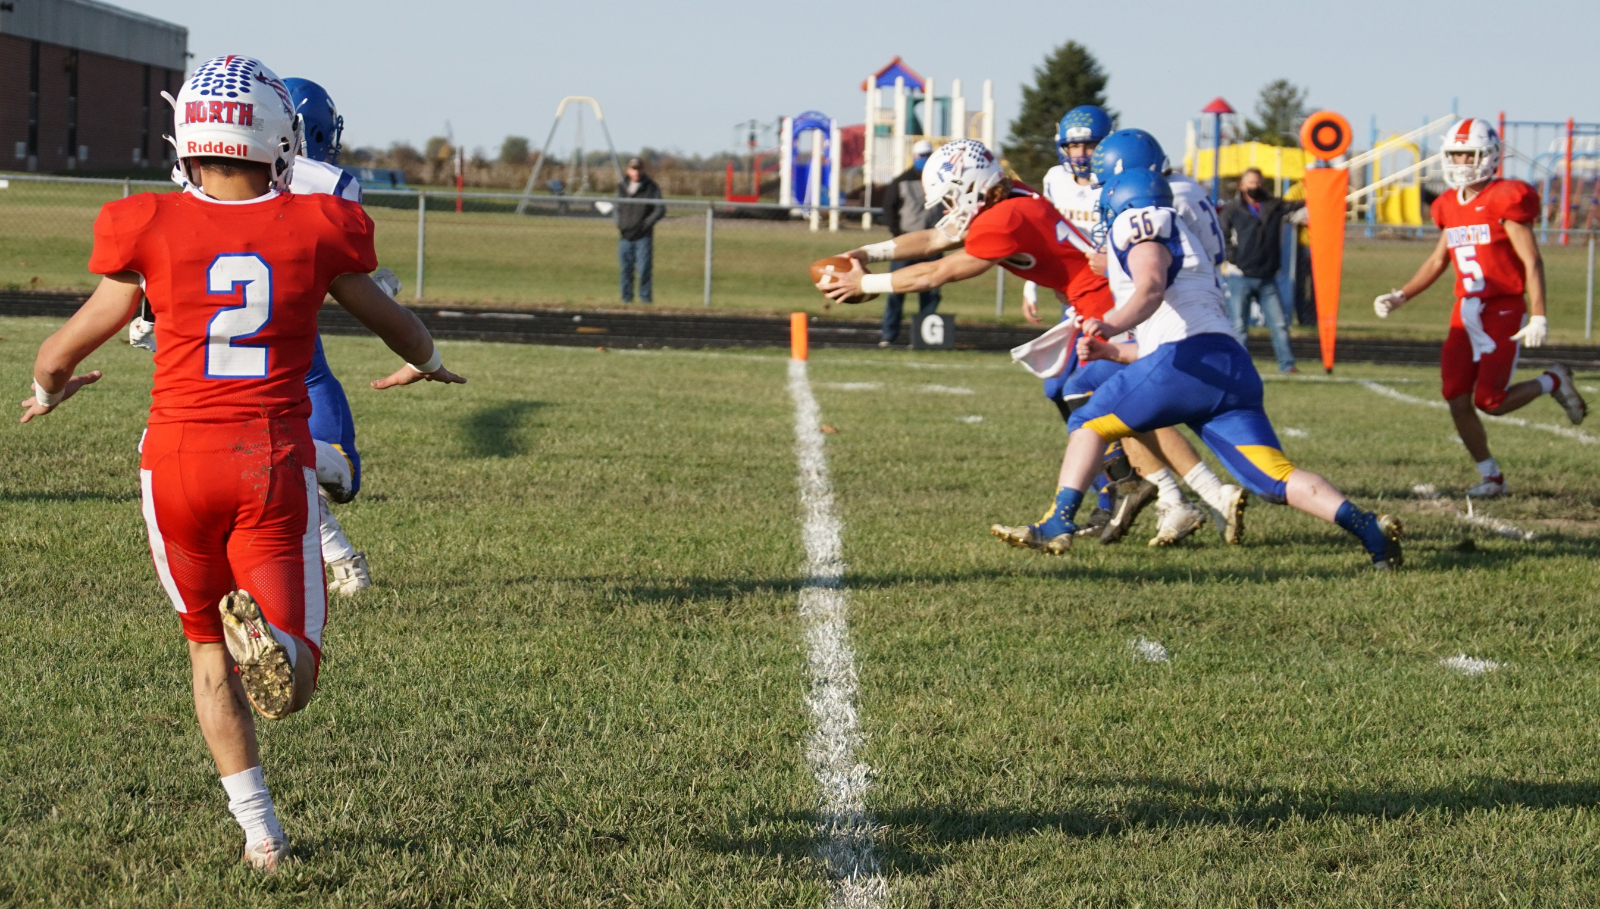 Varsity Football -v- Cambridge City Lincoln 24 October 2020 Sectional Game 1